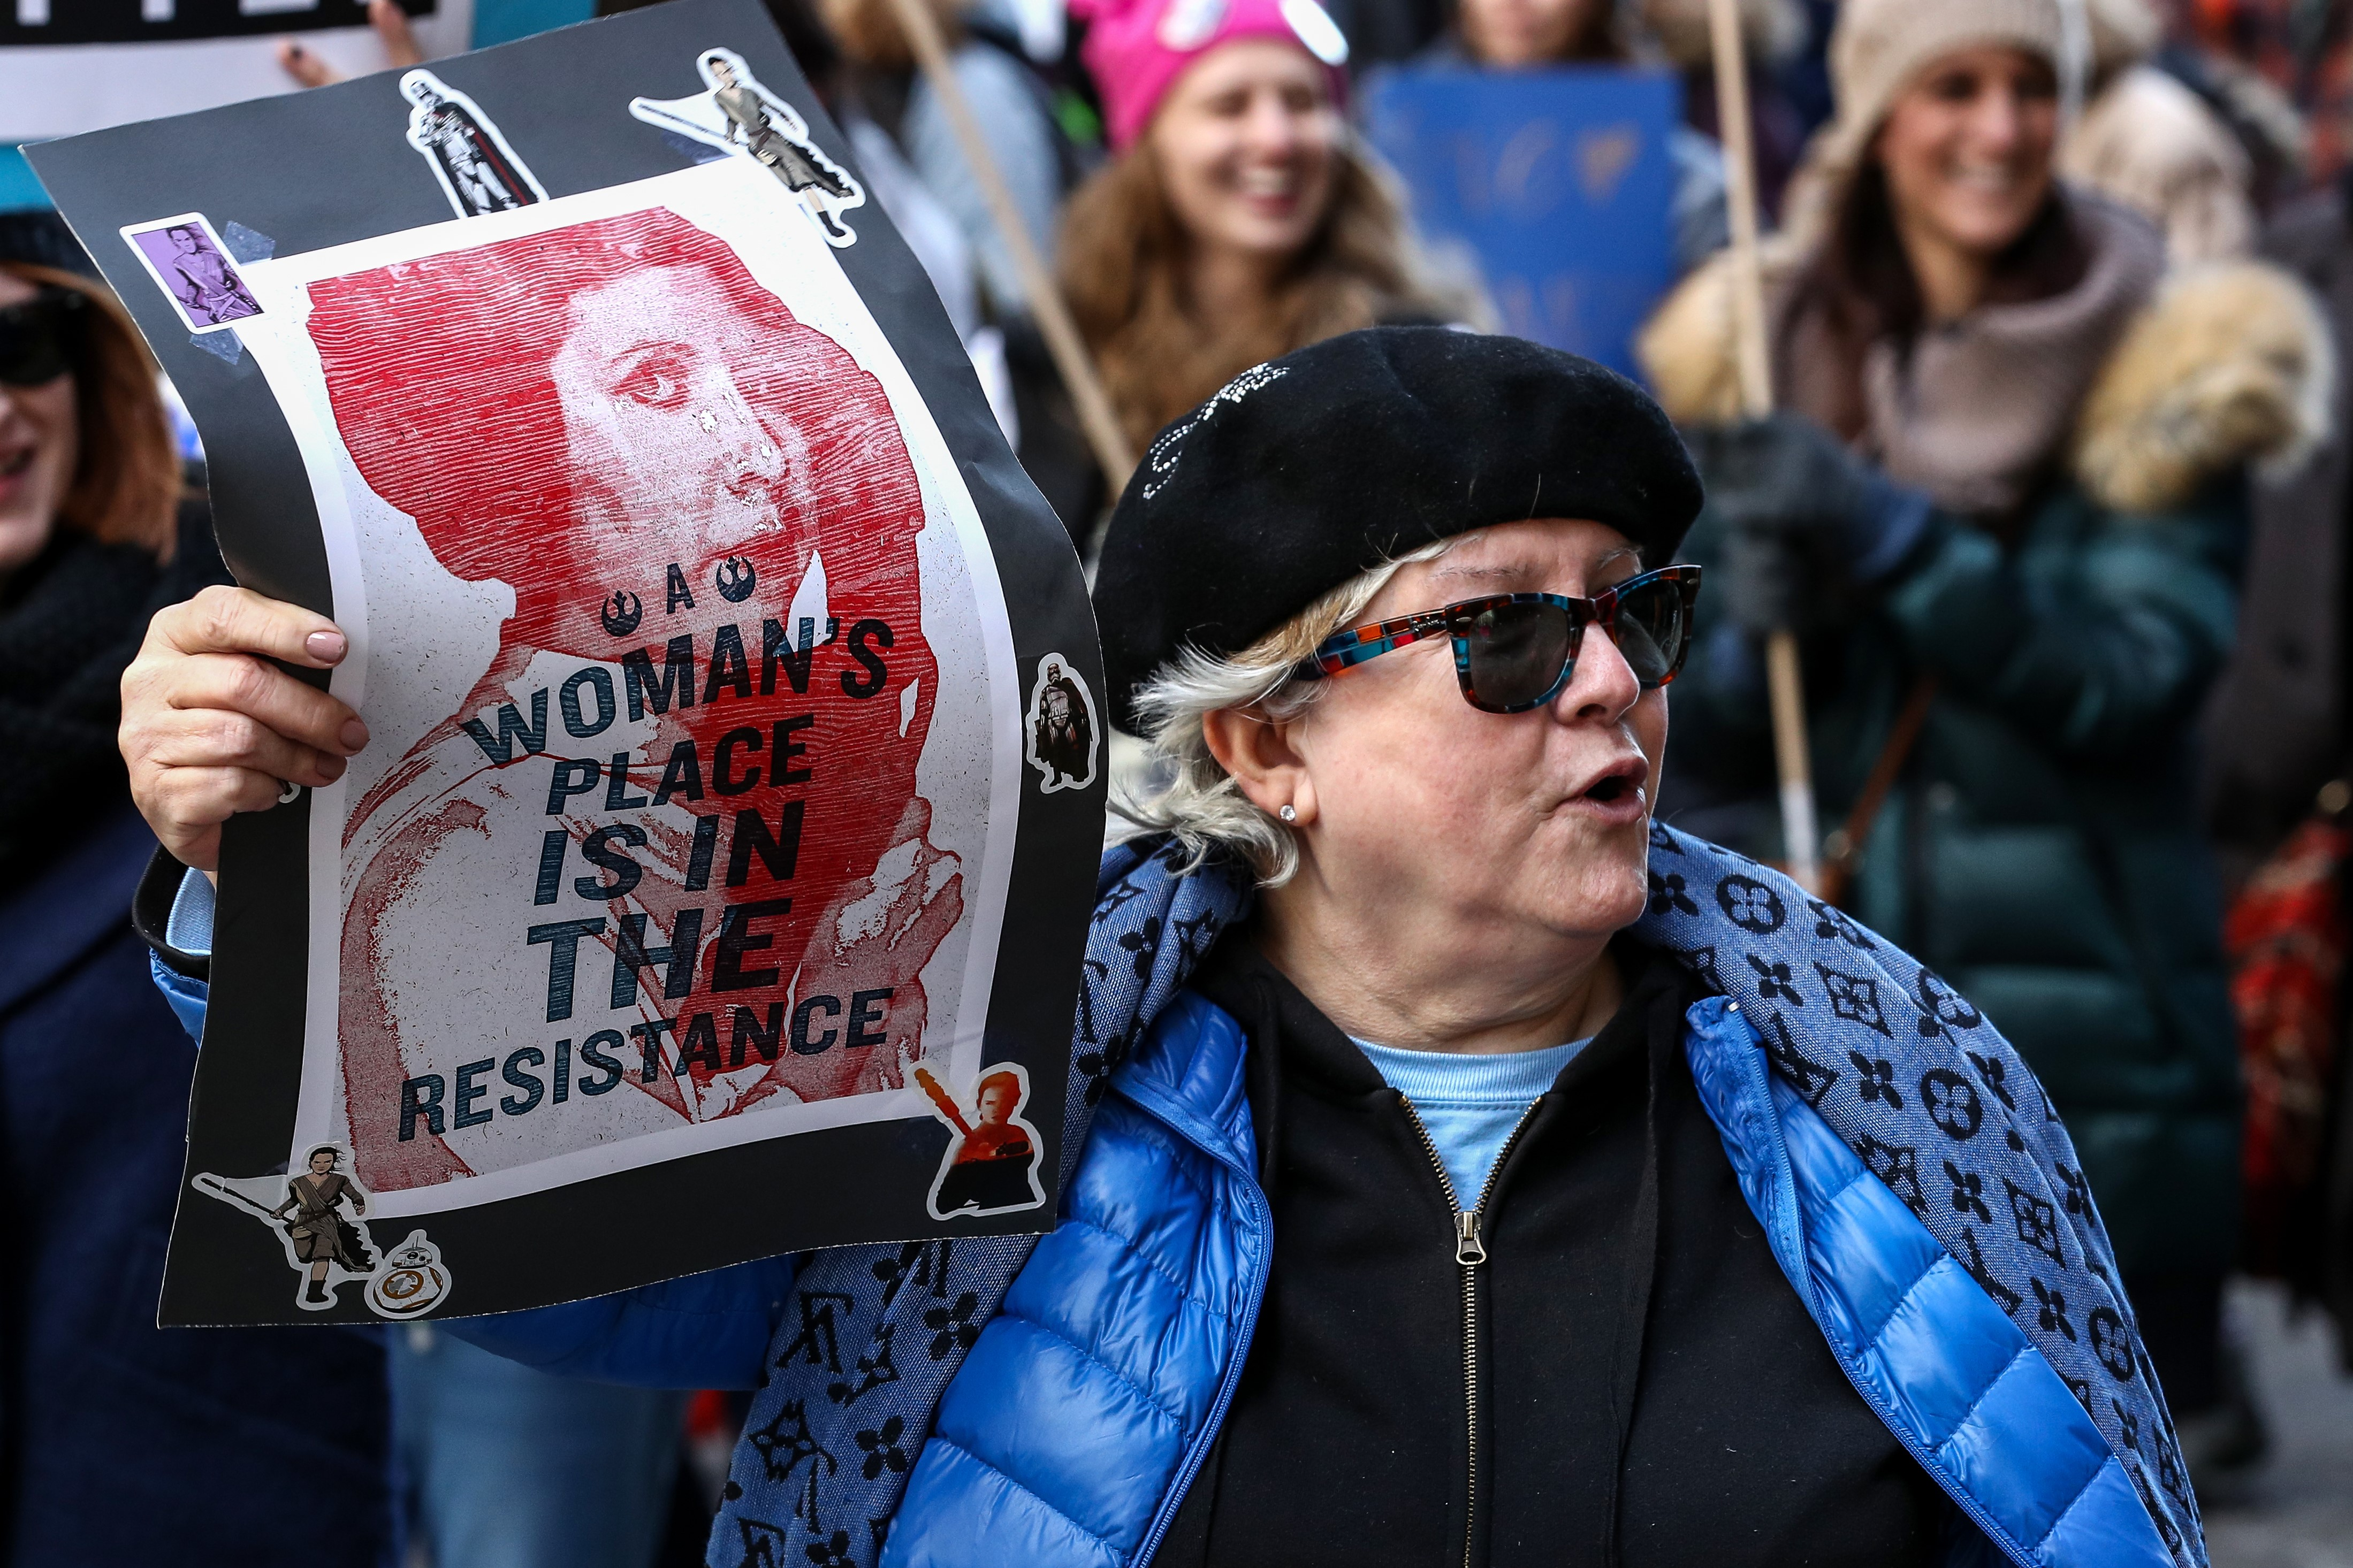 Women's March 2018 in Chicago